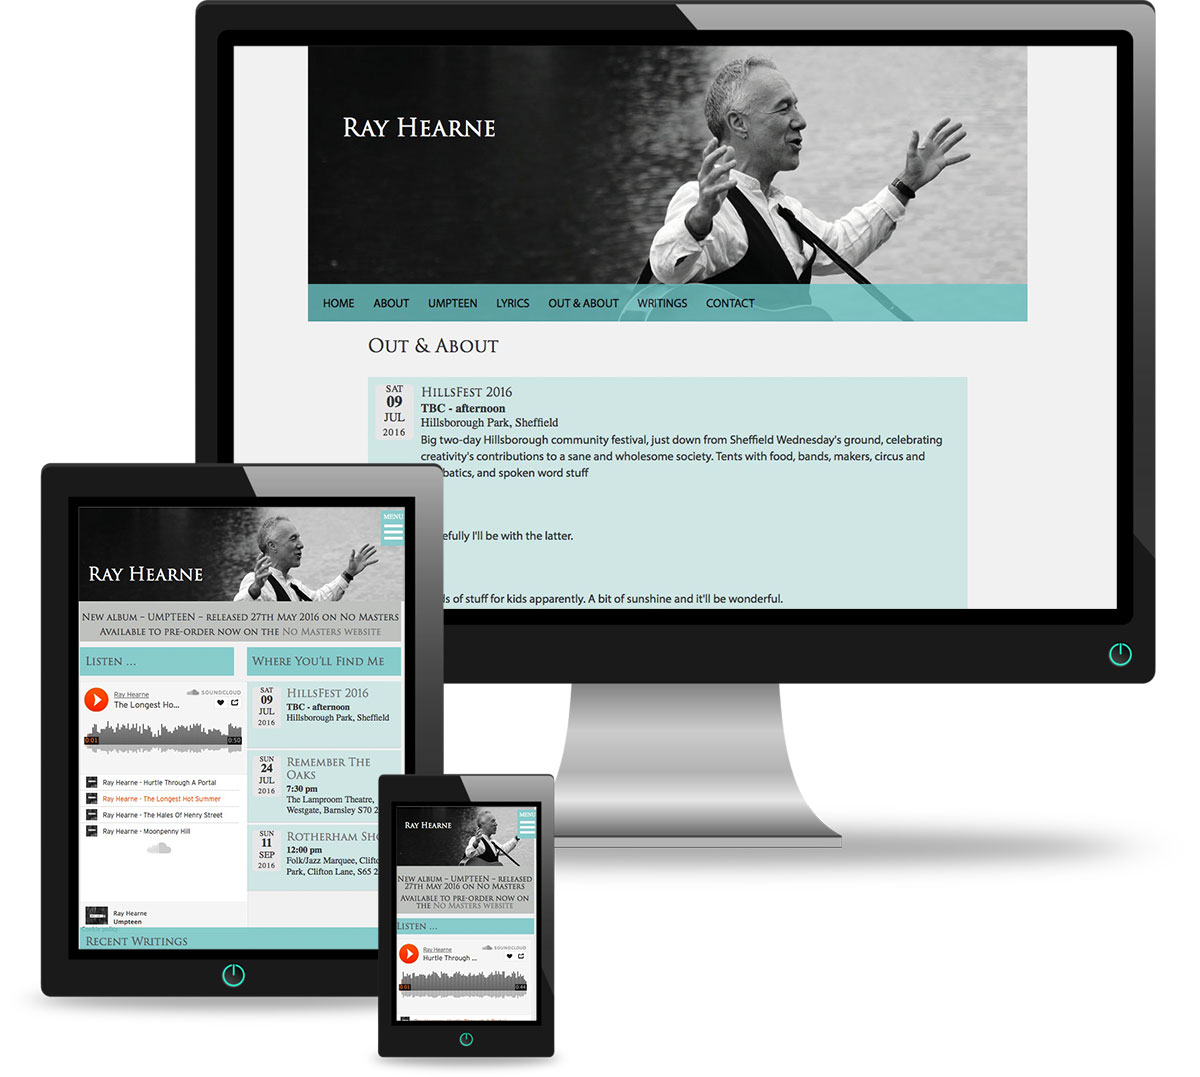 Ray Hearne site on multiple devices